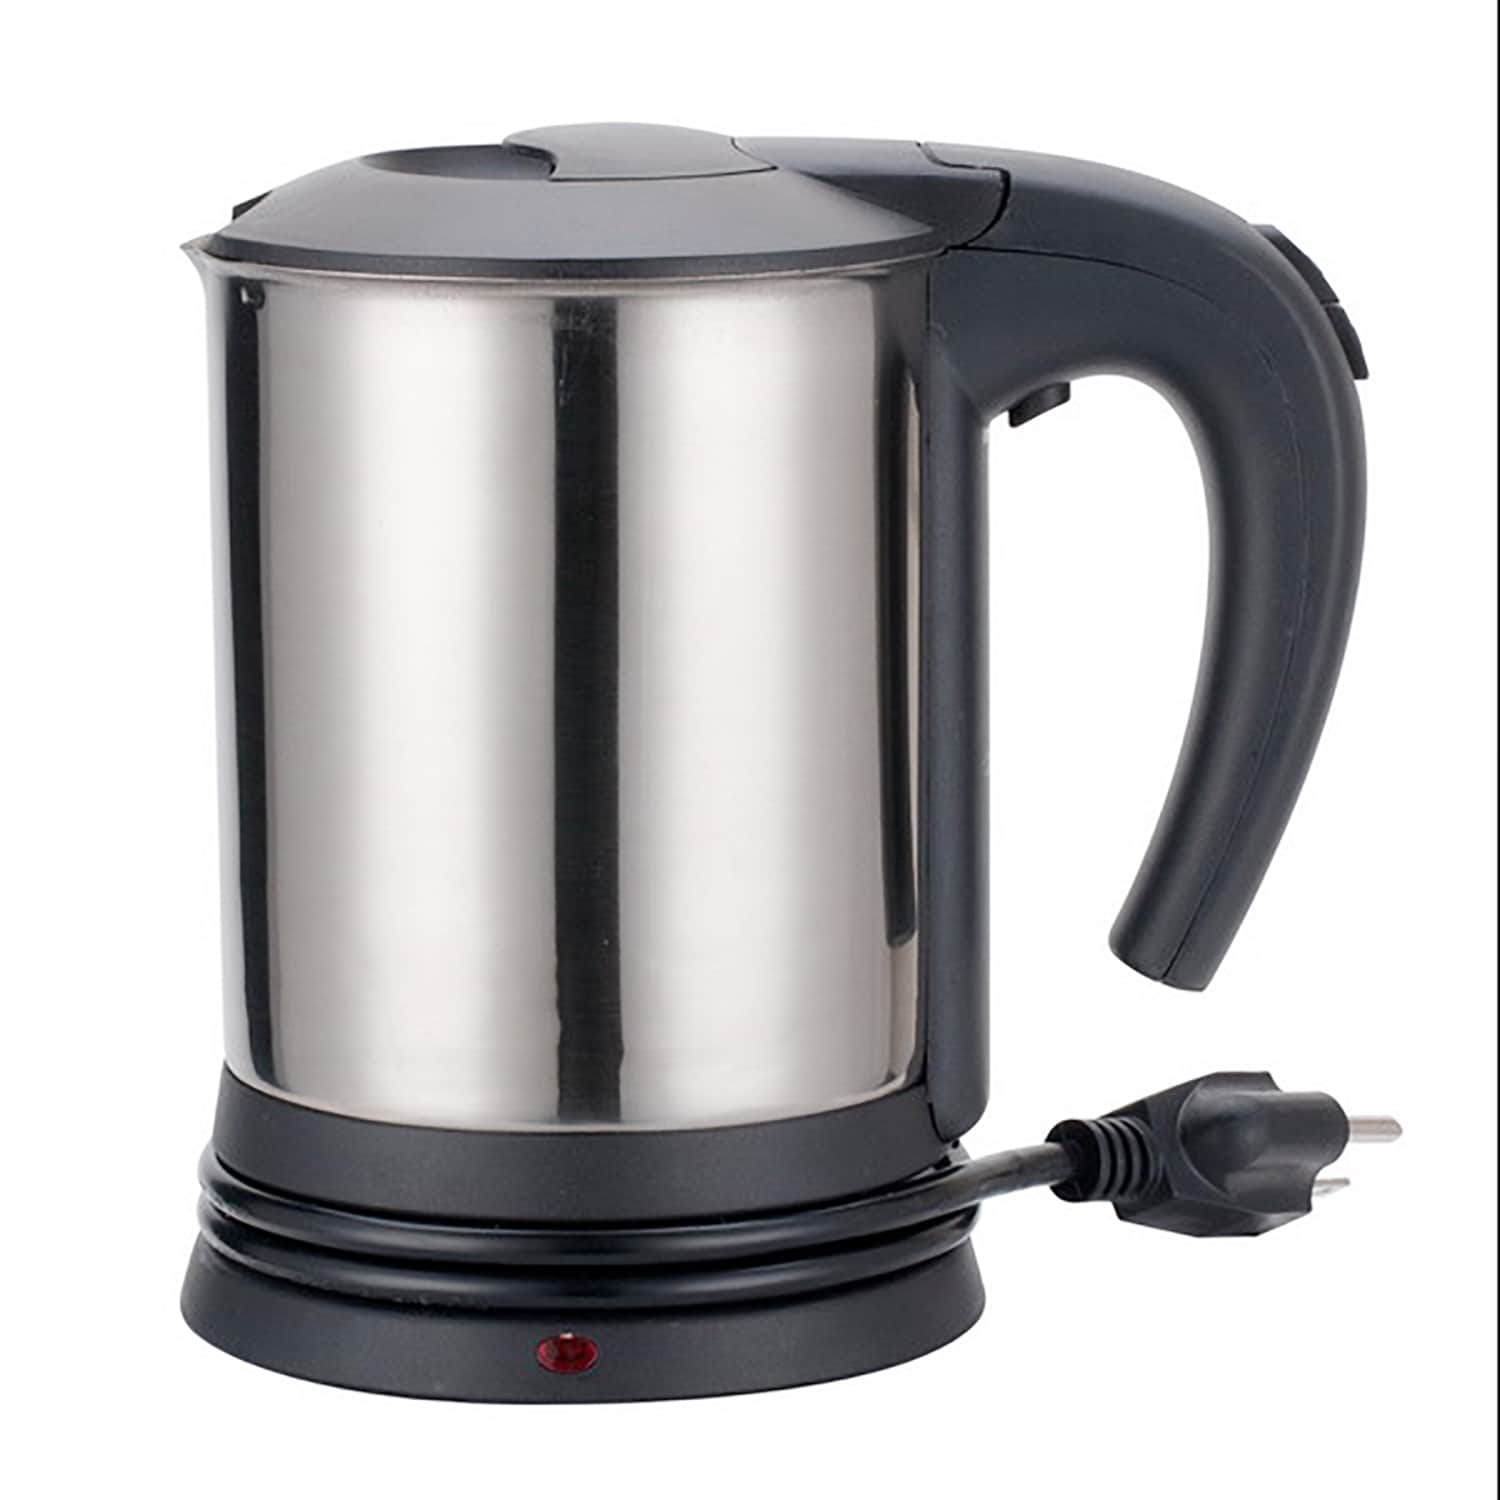 Stainless Steel 800 ml. Electric Kettle (Stainless Steel)...